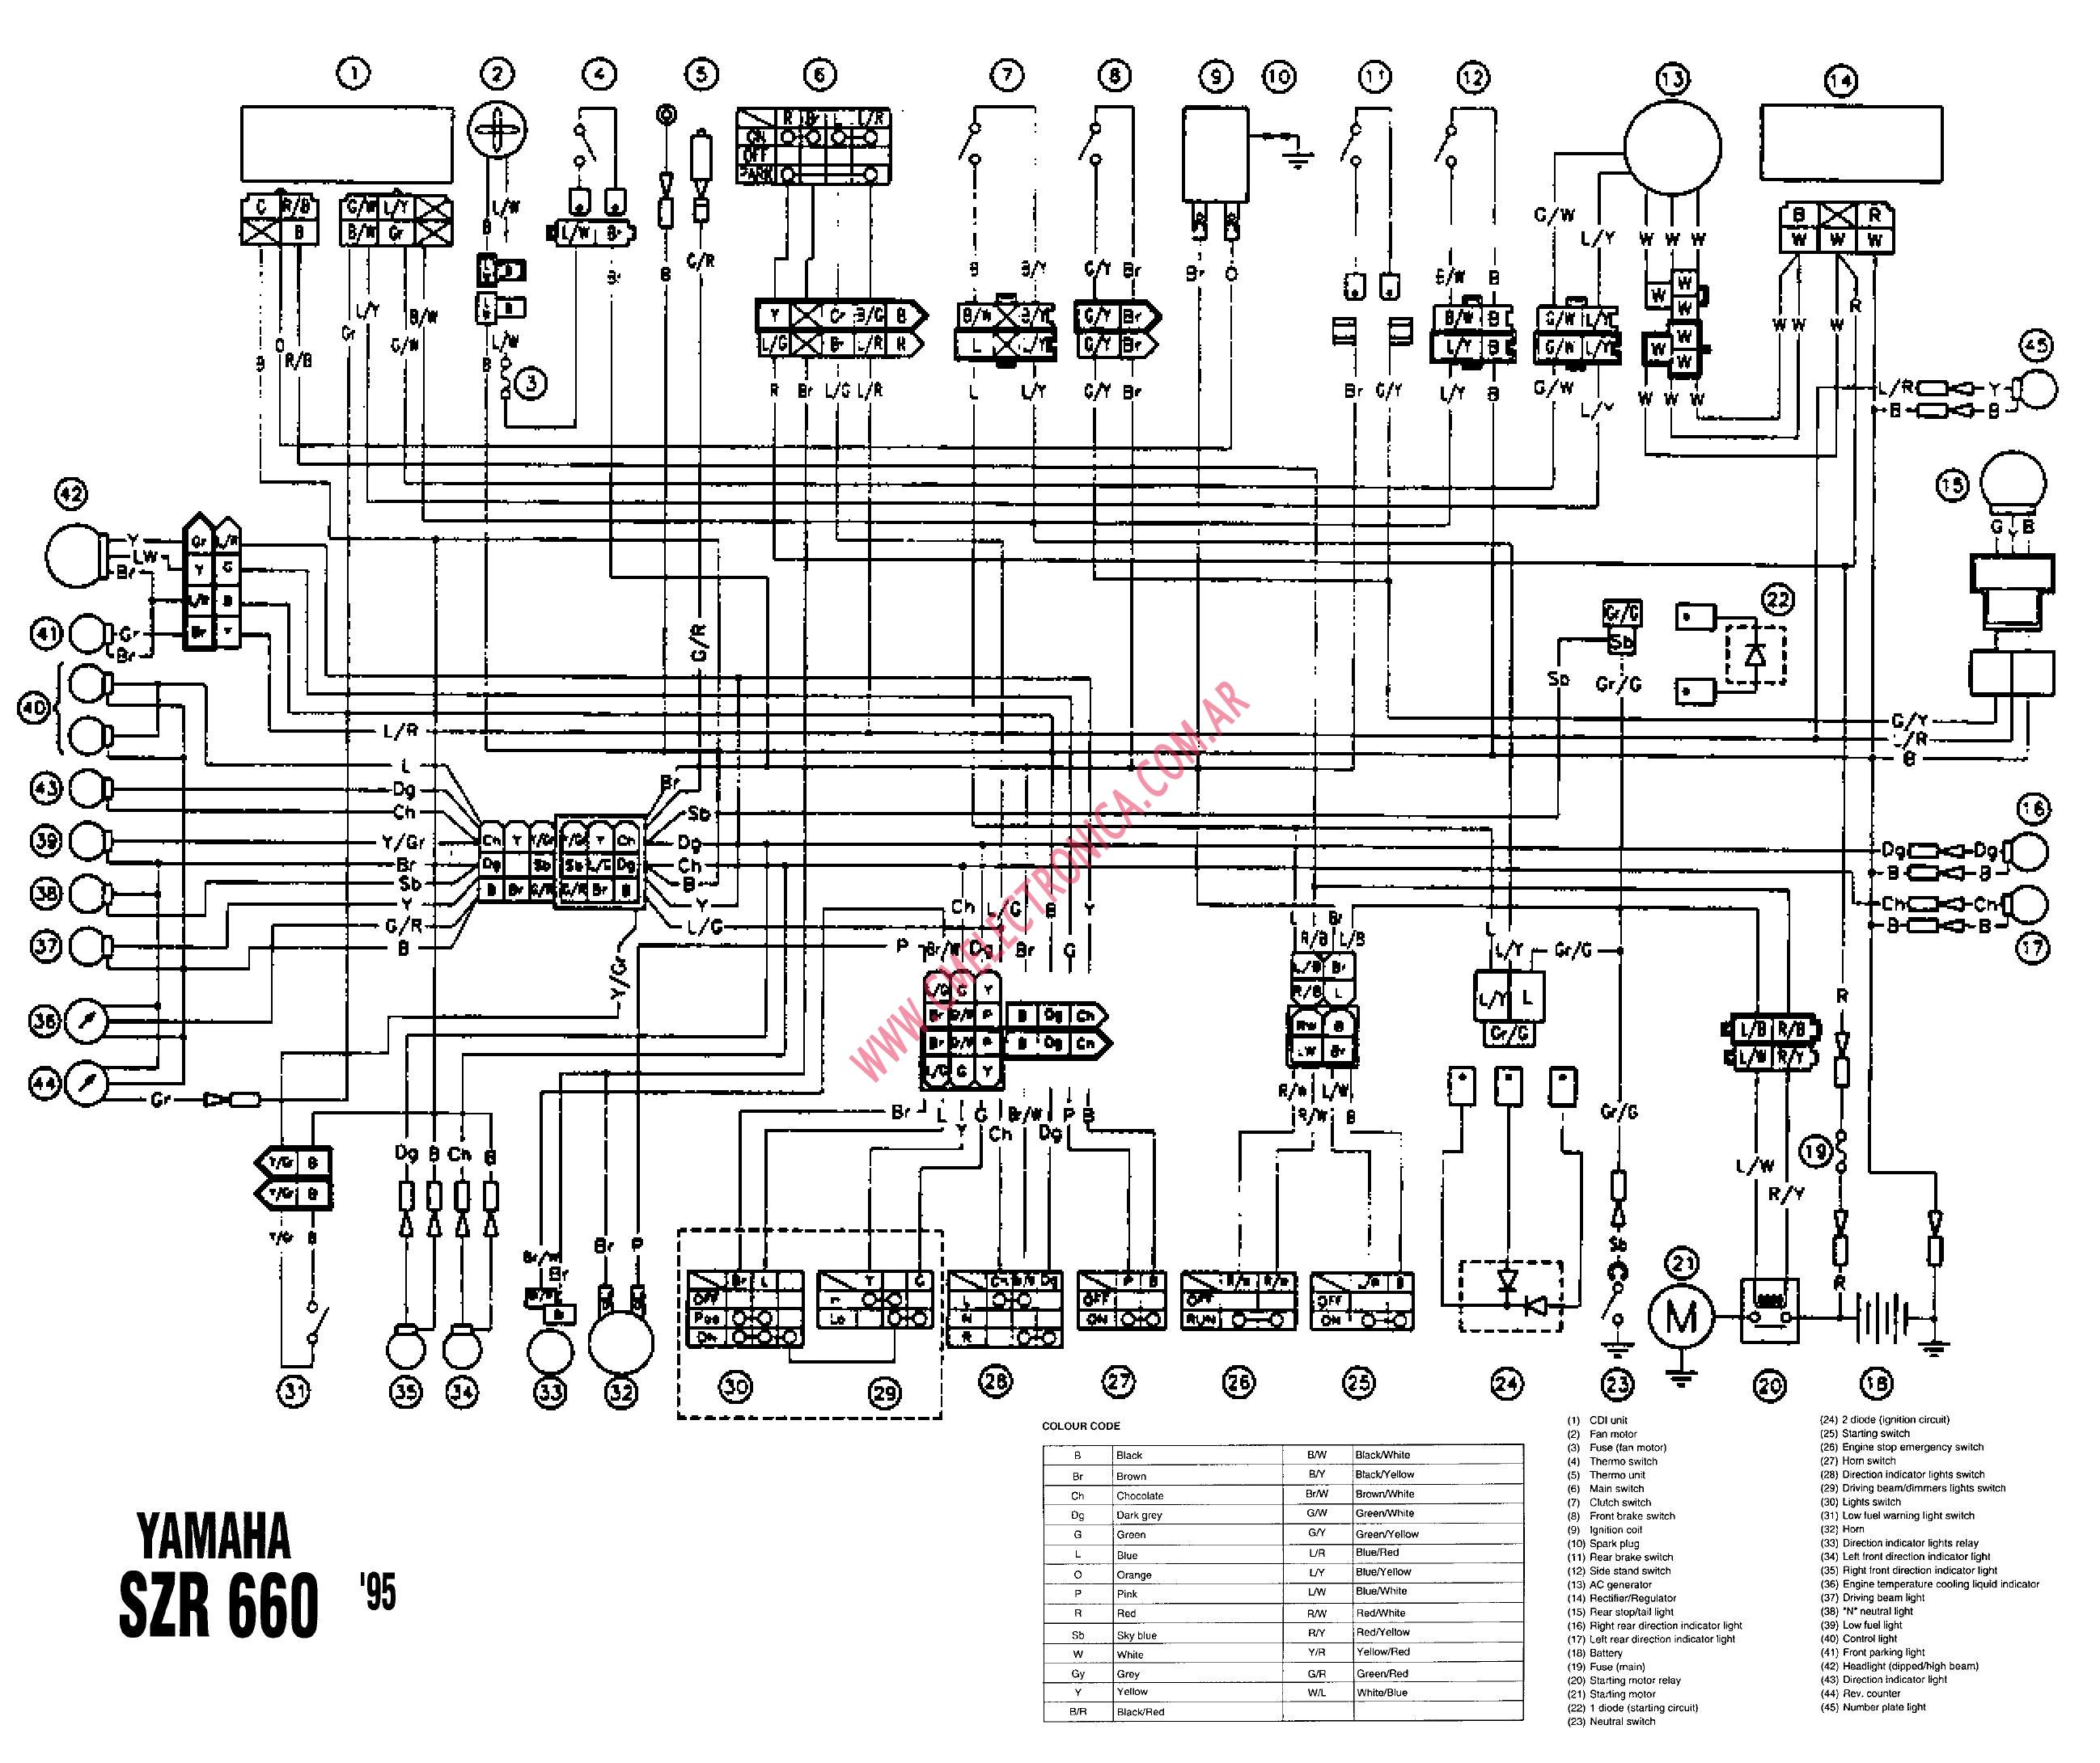 12v-yamaha-raptor-700r-wiring-diagram-7 Yamaha Moto Wiring Diagram on 98 yamaha warrior, mighty mule, chevy engine starter, cid distributor, chevy engine,